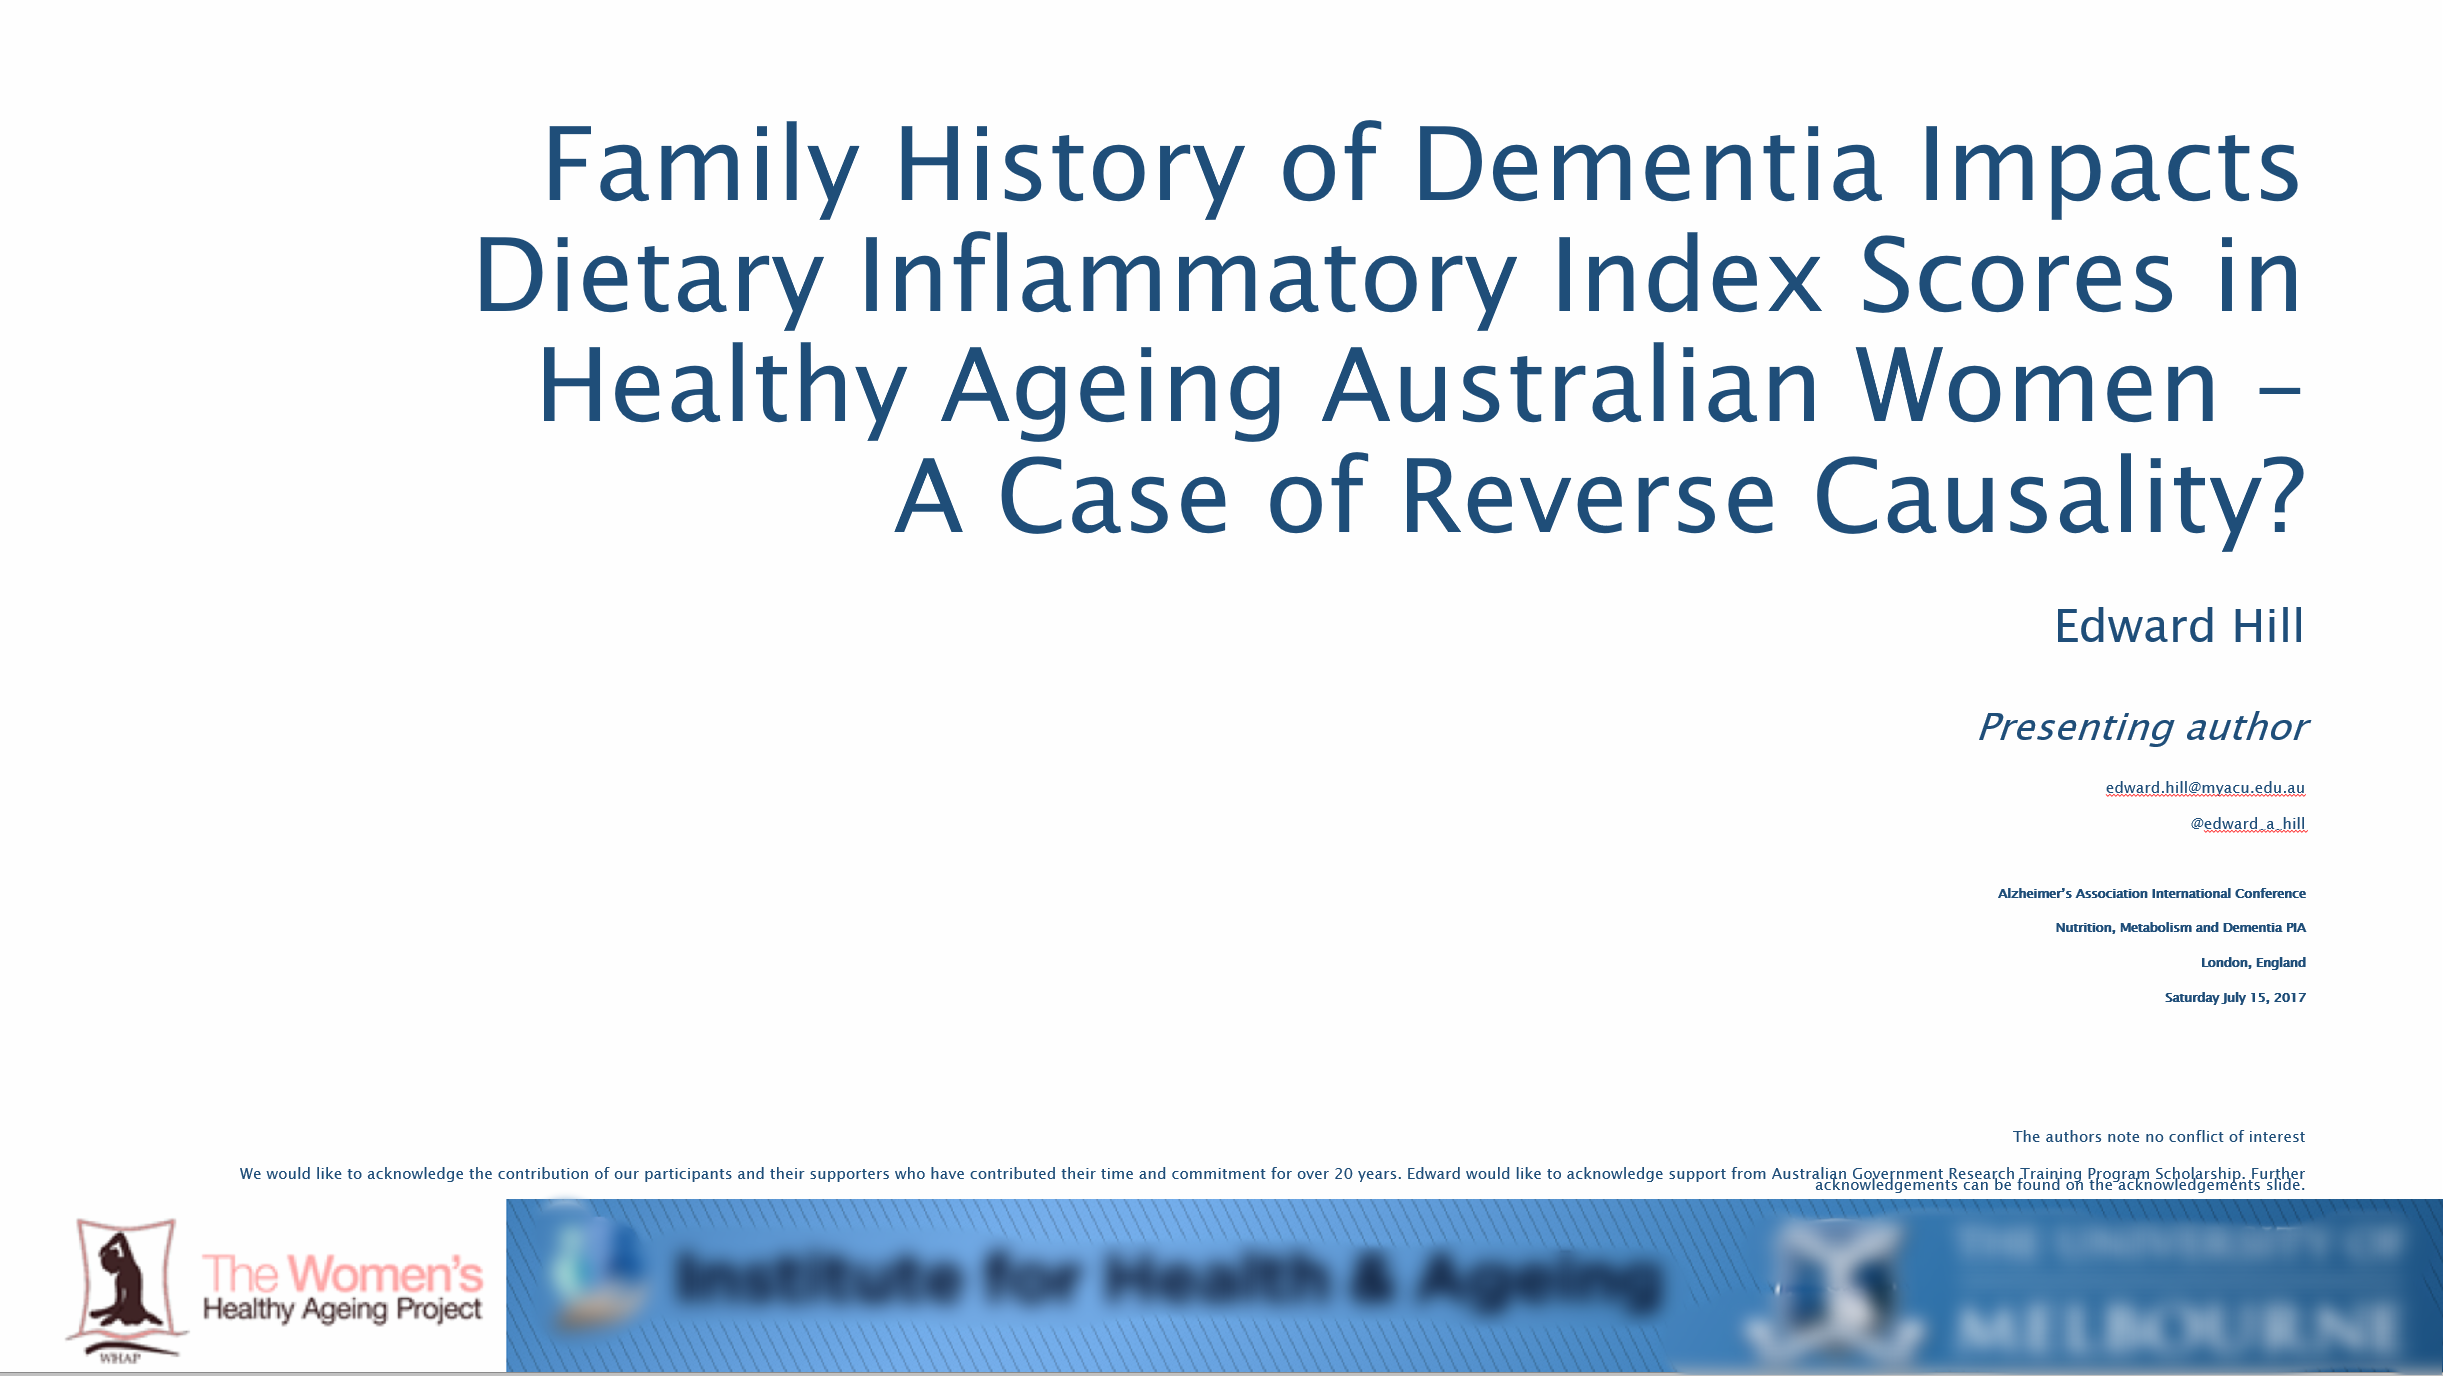 Family history of dementia impacts dietary inflammatory index scores in healthy ageing Australian women – a case of reverse causality? - In this paper, we investigated the impact of familial history of Alzheimer's disease/dementia on dietary inflammatory index scores. To our knowledge, no study has investigated the impact of familial dementia on nutritional patterns. This study found clear evidence for the alteration of nutritional profiles based on familial history after adjusting for confounders. In nutritional research, there is a predilection for dietary choices impacting cognitive decline. These results suggest that an individual's familial propensity for cognitive decline may be enacting an impact on their dietary choices, irrespective of their APOE-ε4 status.Citation: Hill, E., et al. (2017). Family history of dementia impacts dietary inflammatory index scores in healthy ageing Australian women – a case of reverse causality? Paper presented at Alzheimer's Association International Conference, London, England, 16-20 July.